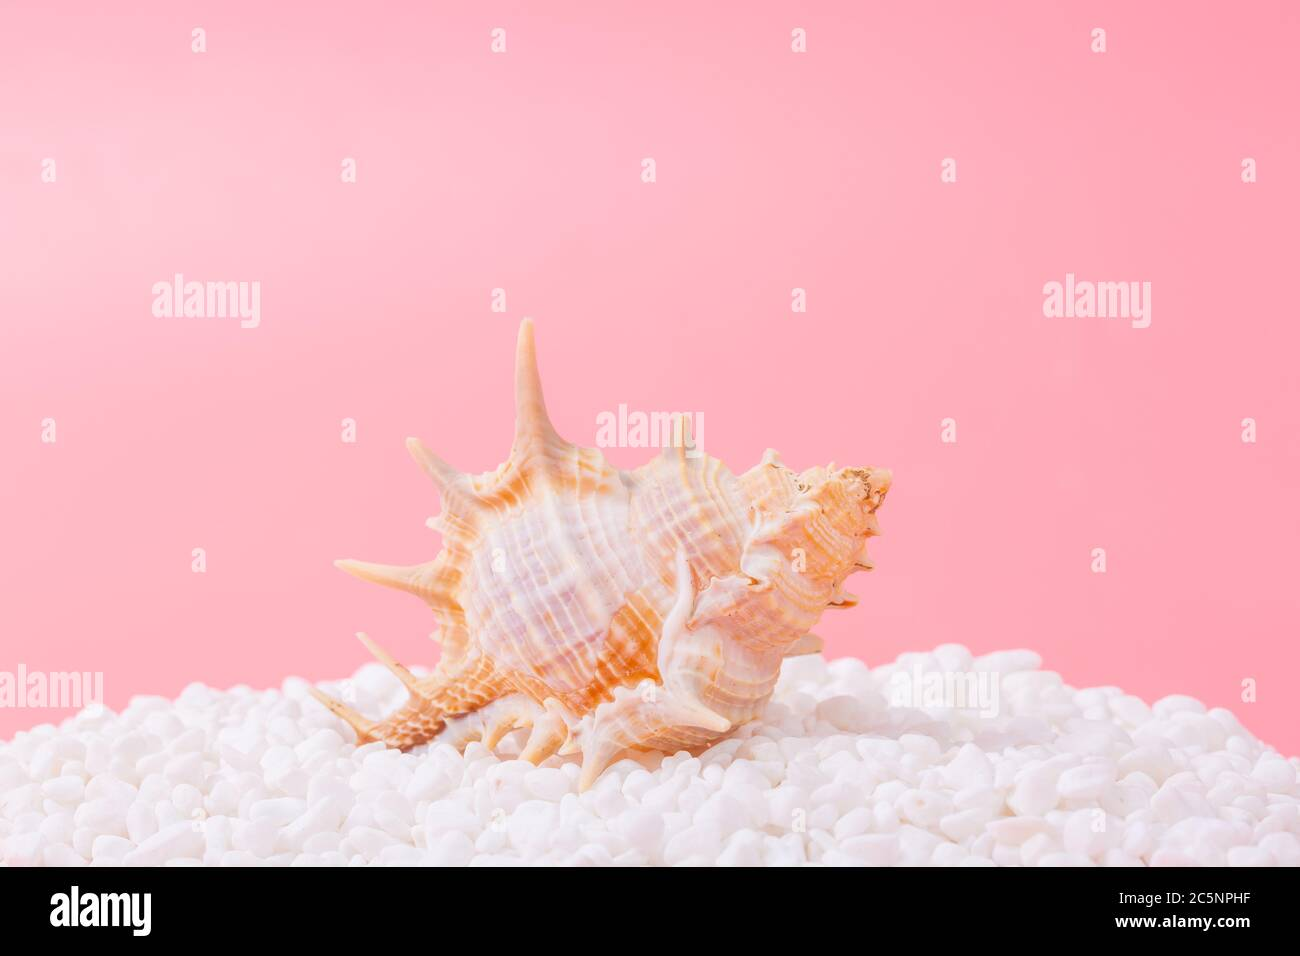 Spiral shell closeup on pink background Stock Photo